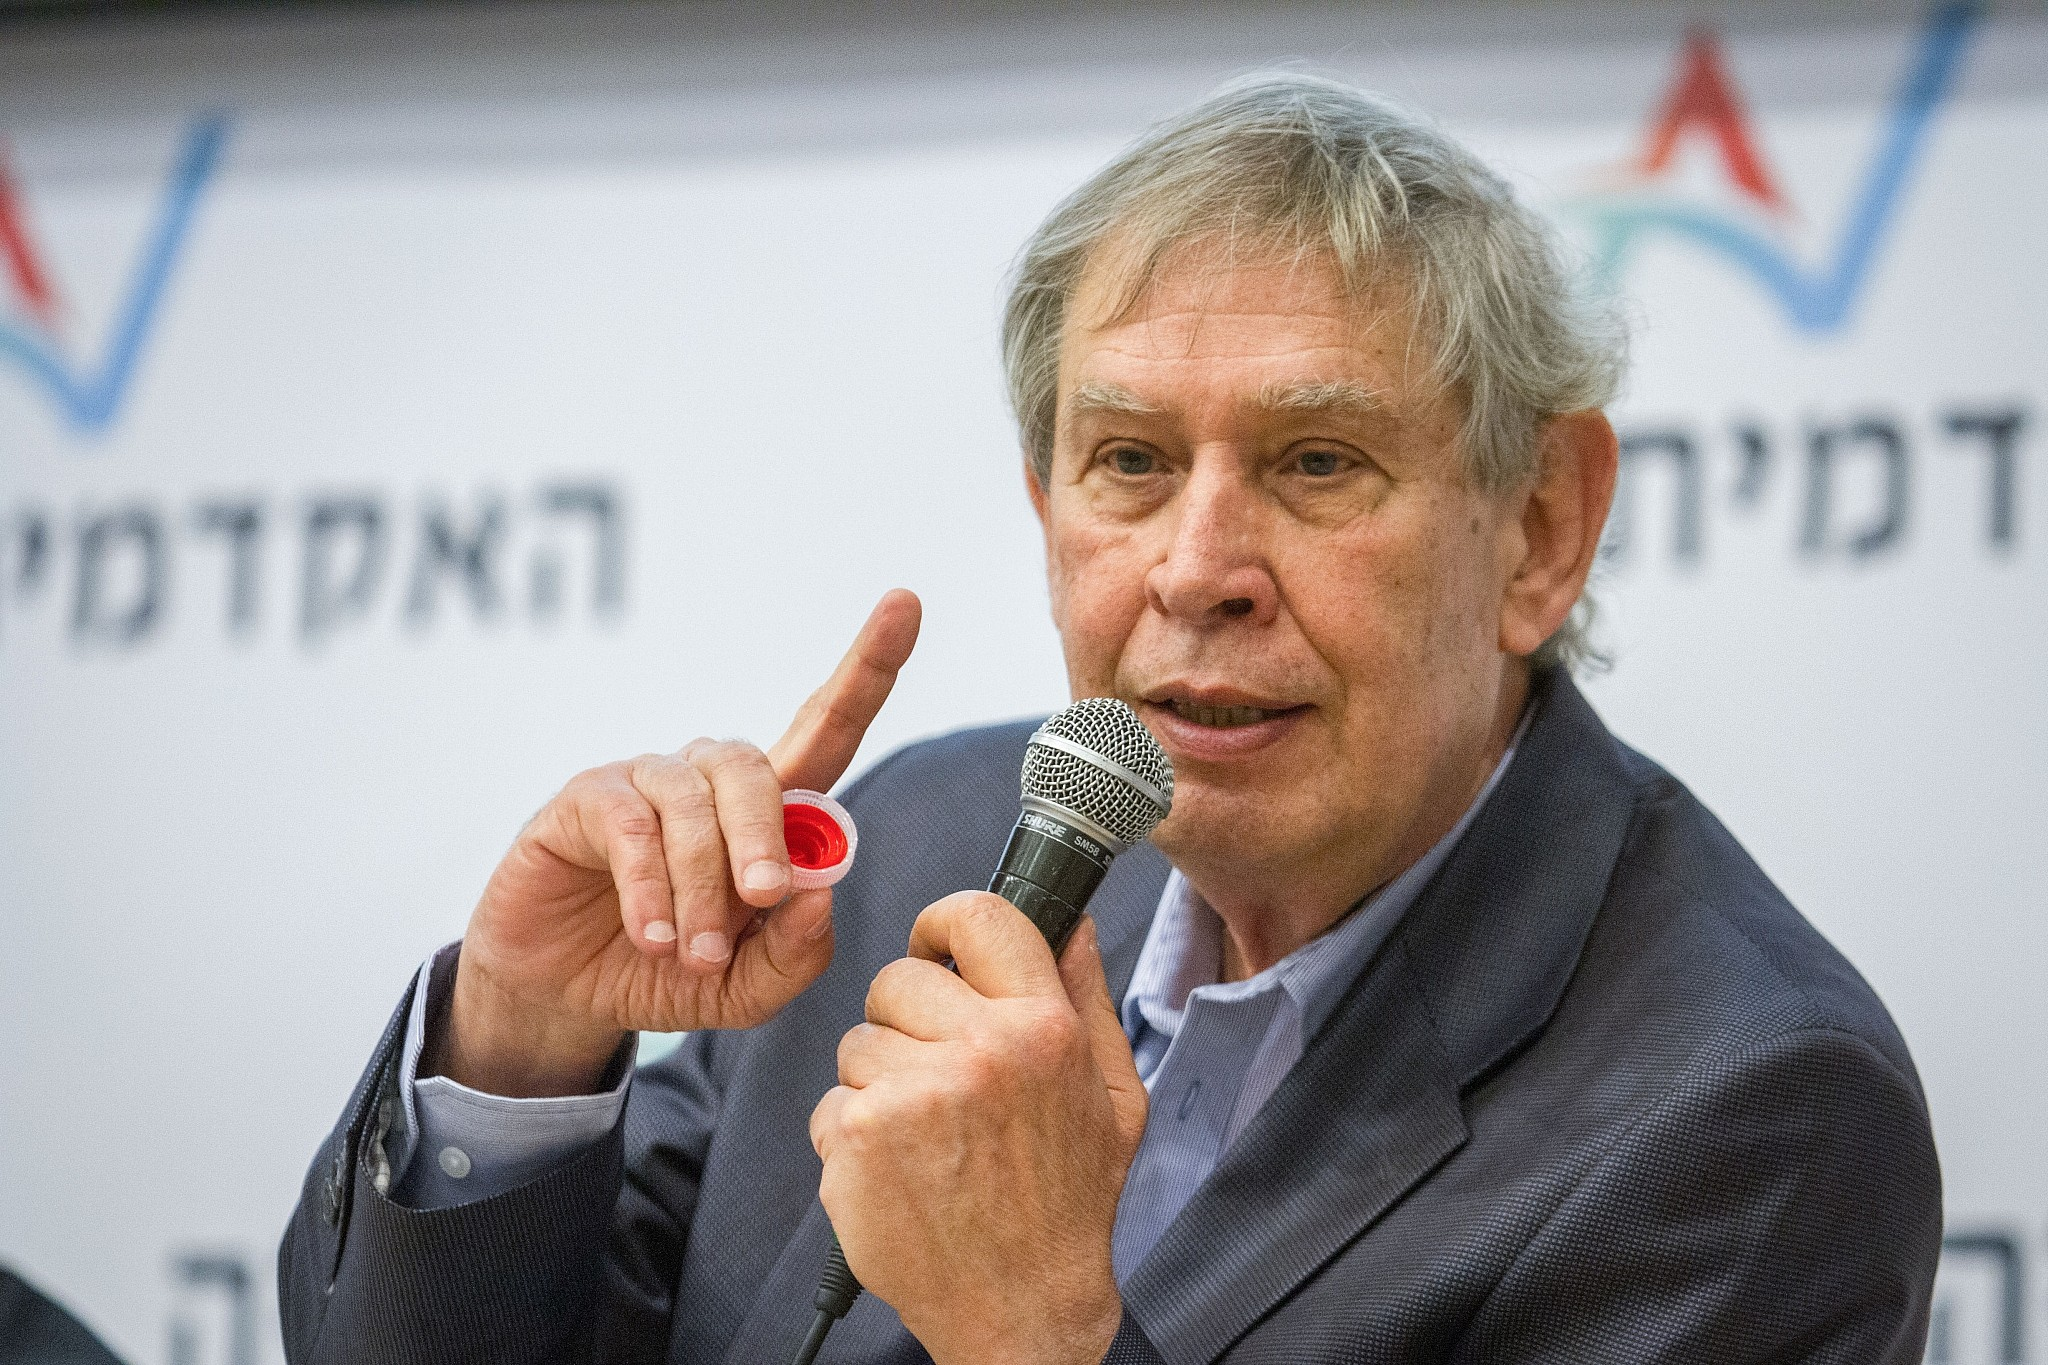 Ex-Mossad chief: In 2011 Netanyahu ordered military to ready Iran strike    The Times of Israel